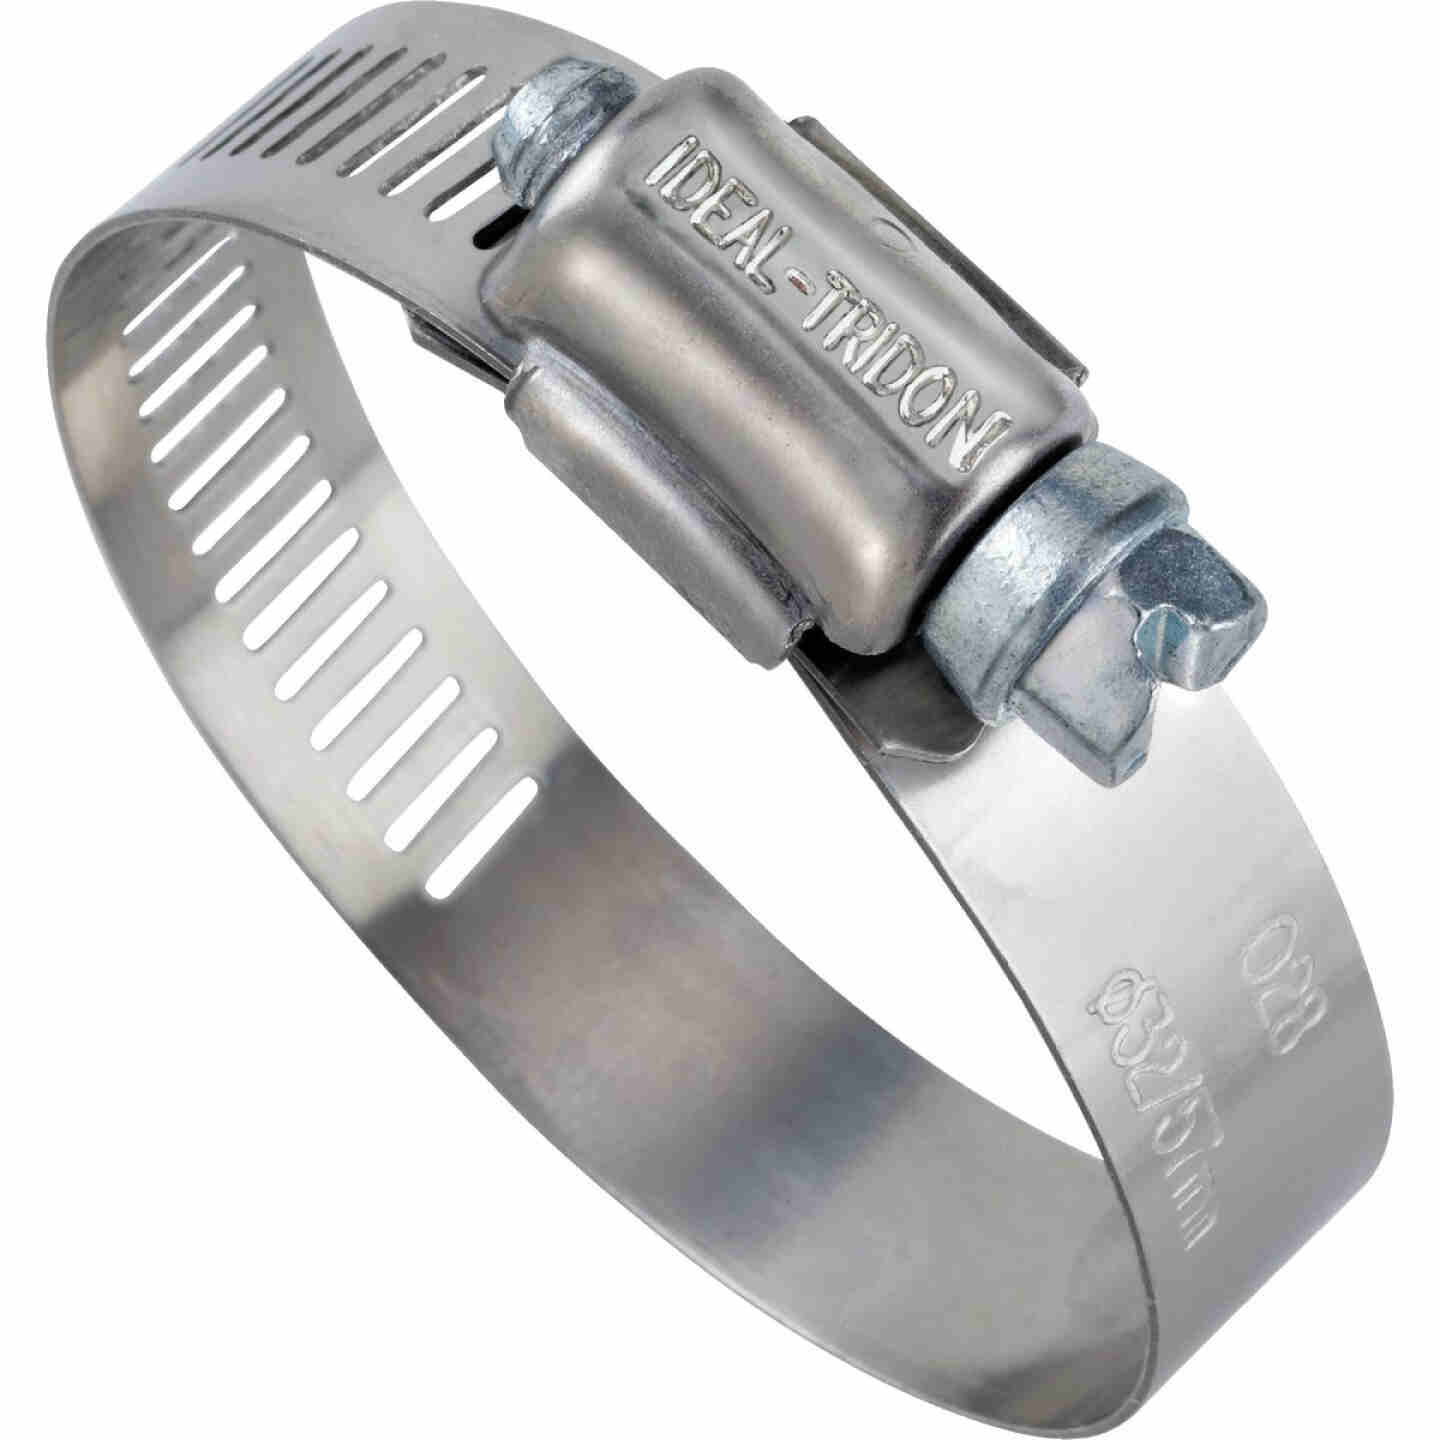 Ideal 1 In. - 2 In. 57 Stainless Steel Hose Clamp with Zinc-Plated Carbon Steel Screw Image 1